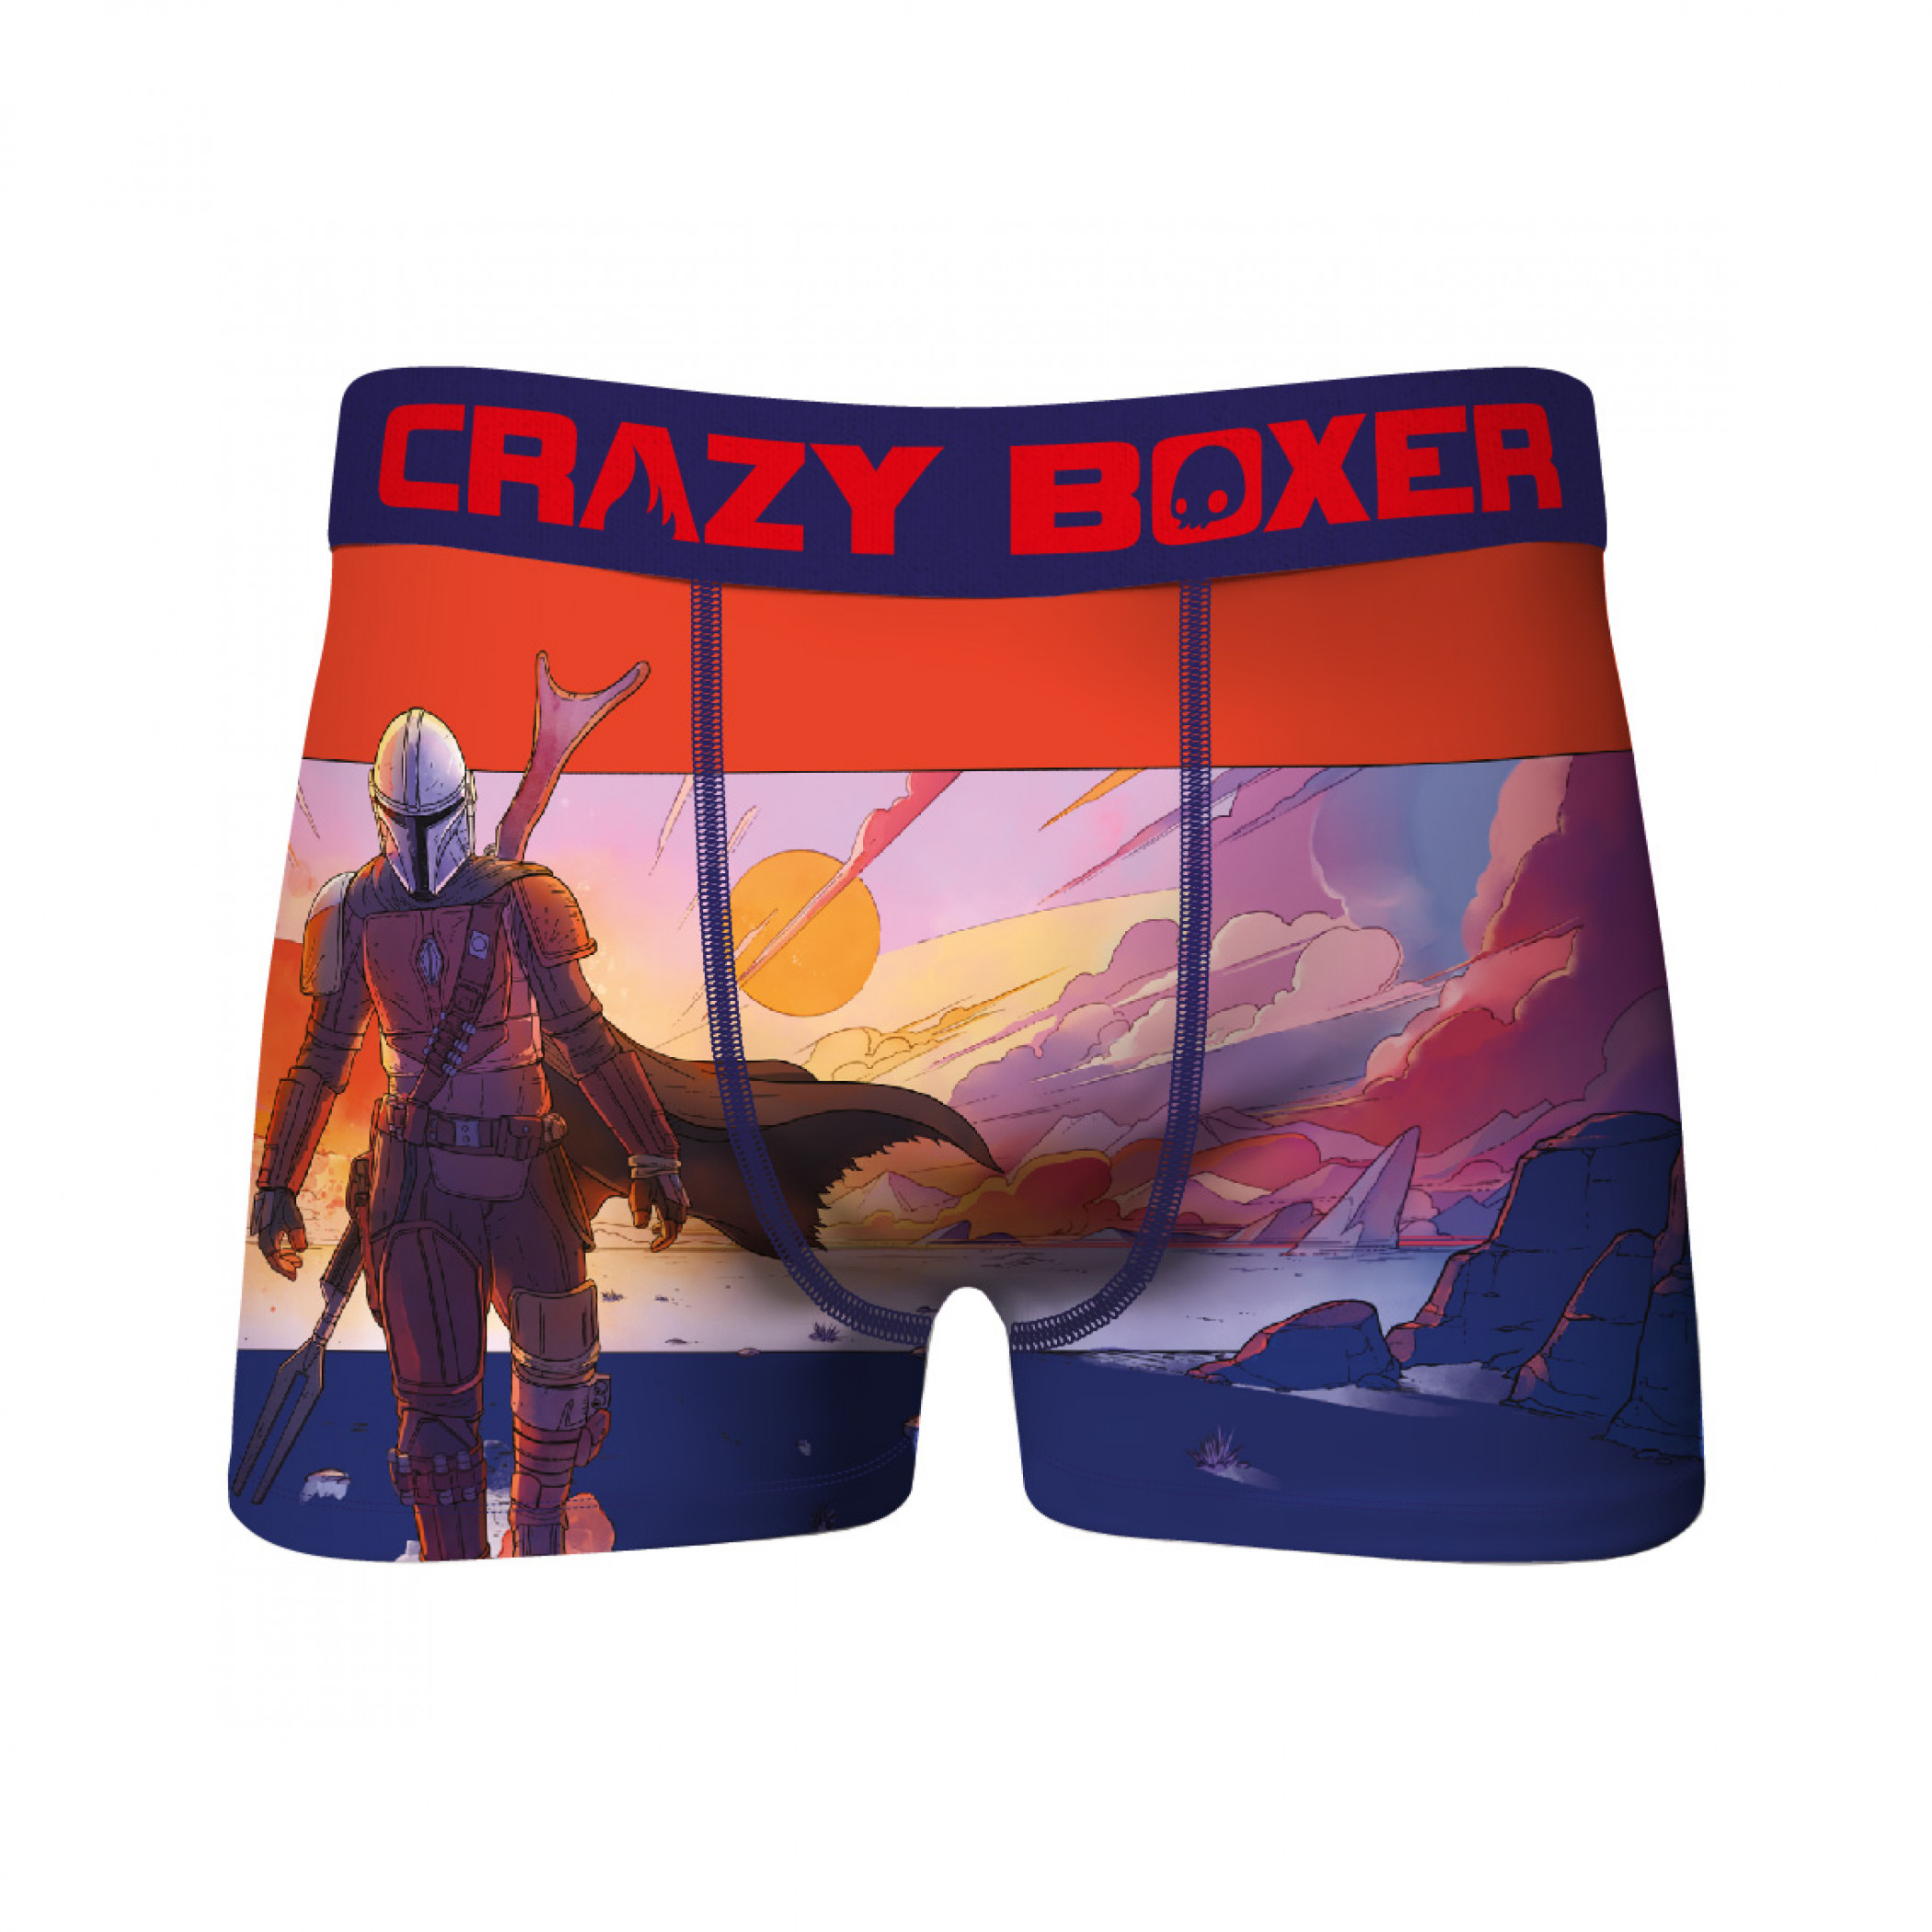 Star Wars The Mandalorian Landscape & The Child All Over Print 2-Pack of Crazy Boxer Briefs